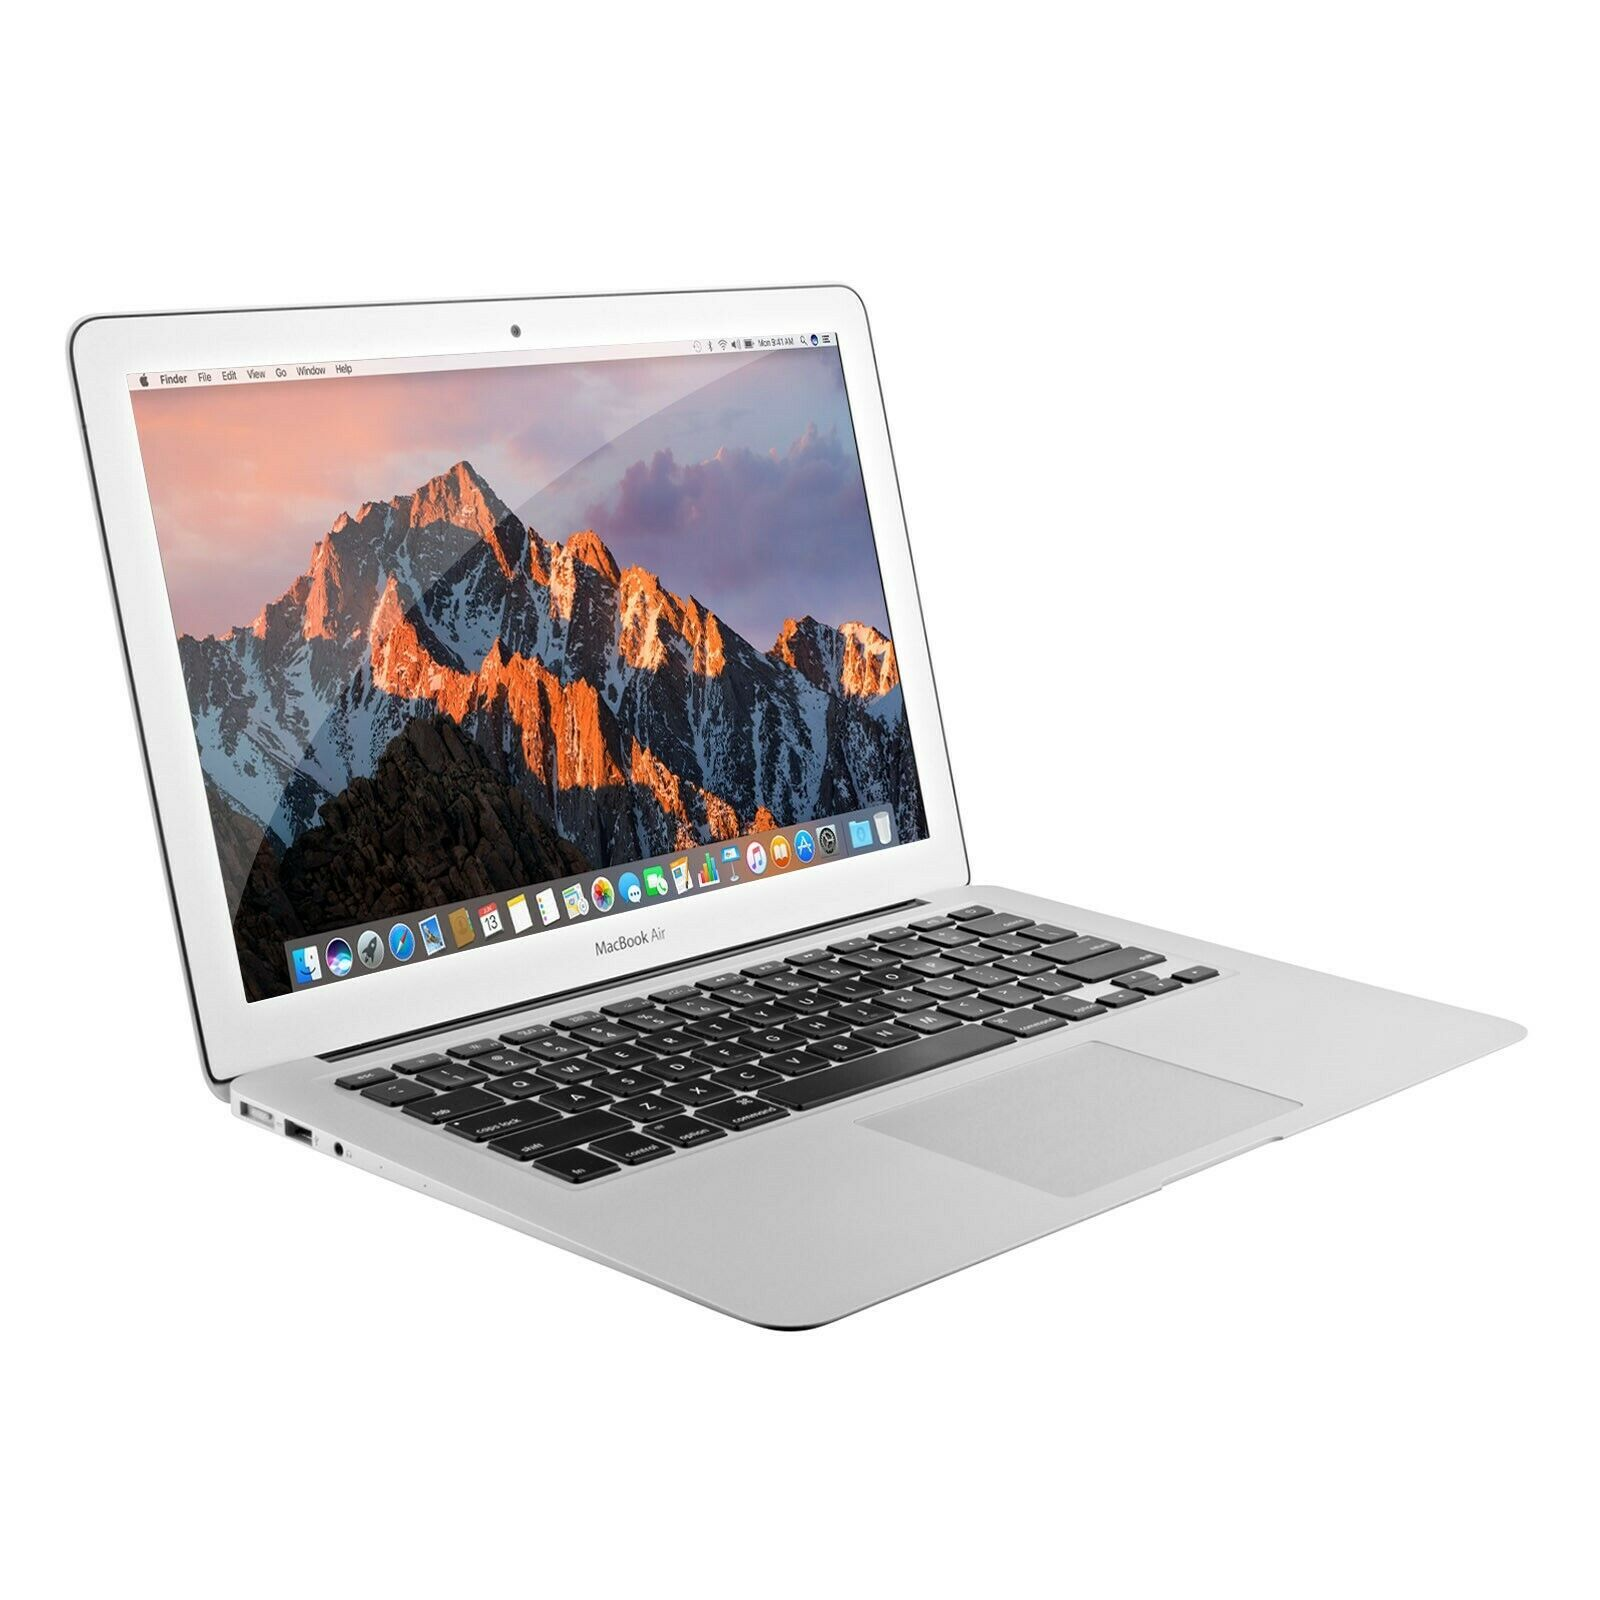 2018 MacBook Air in space grey. Like new condition with